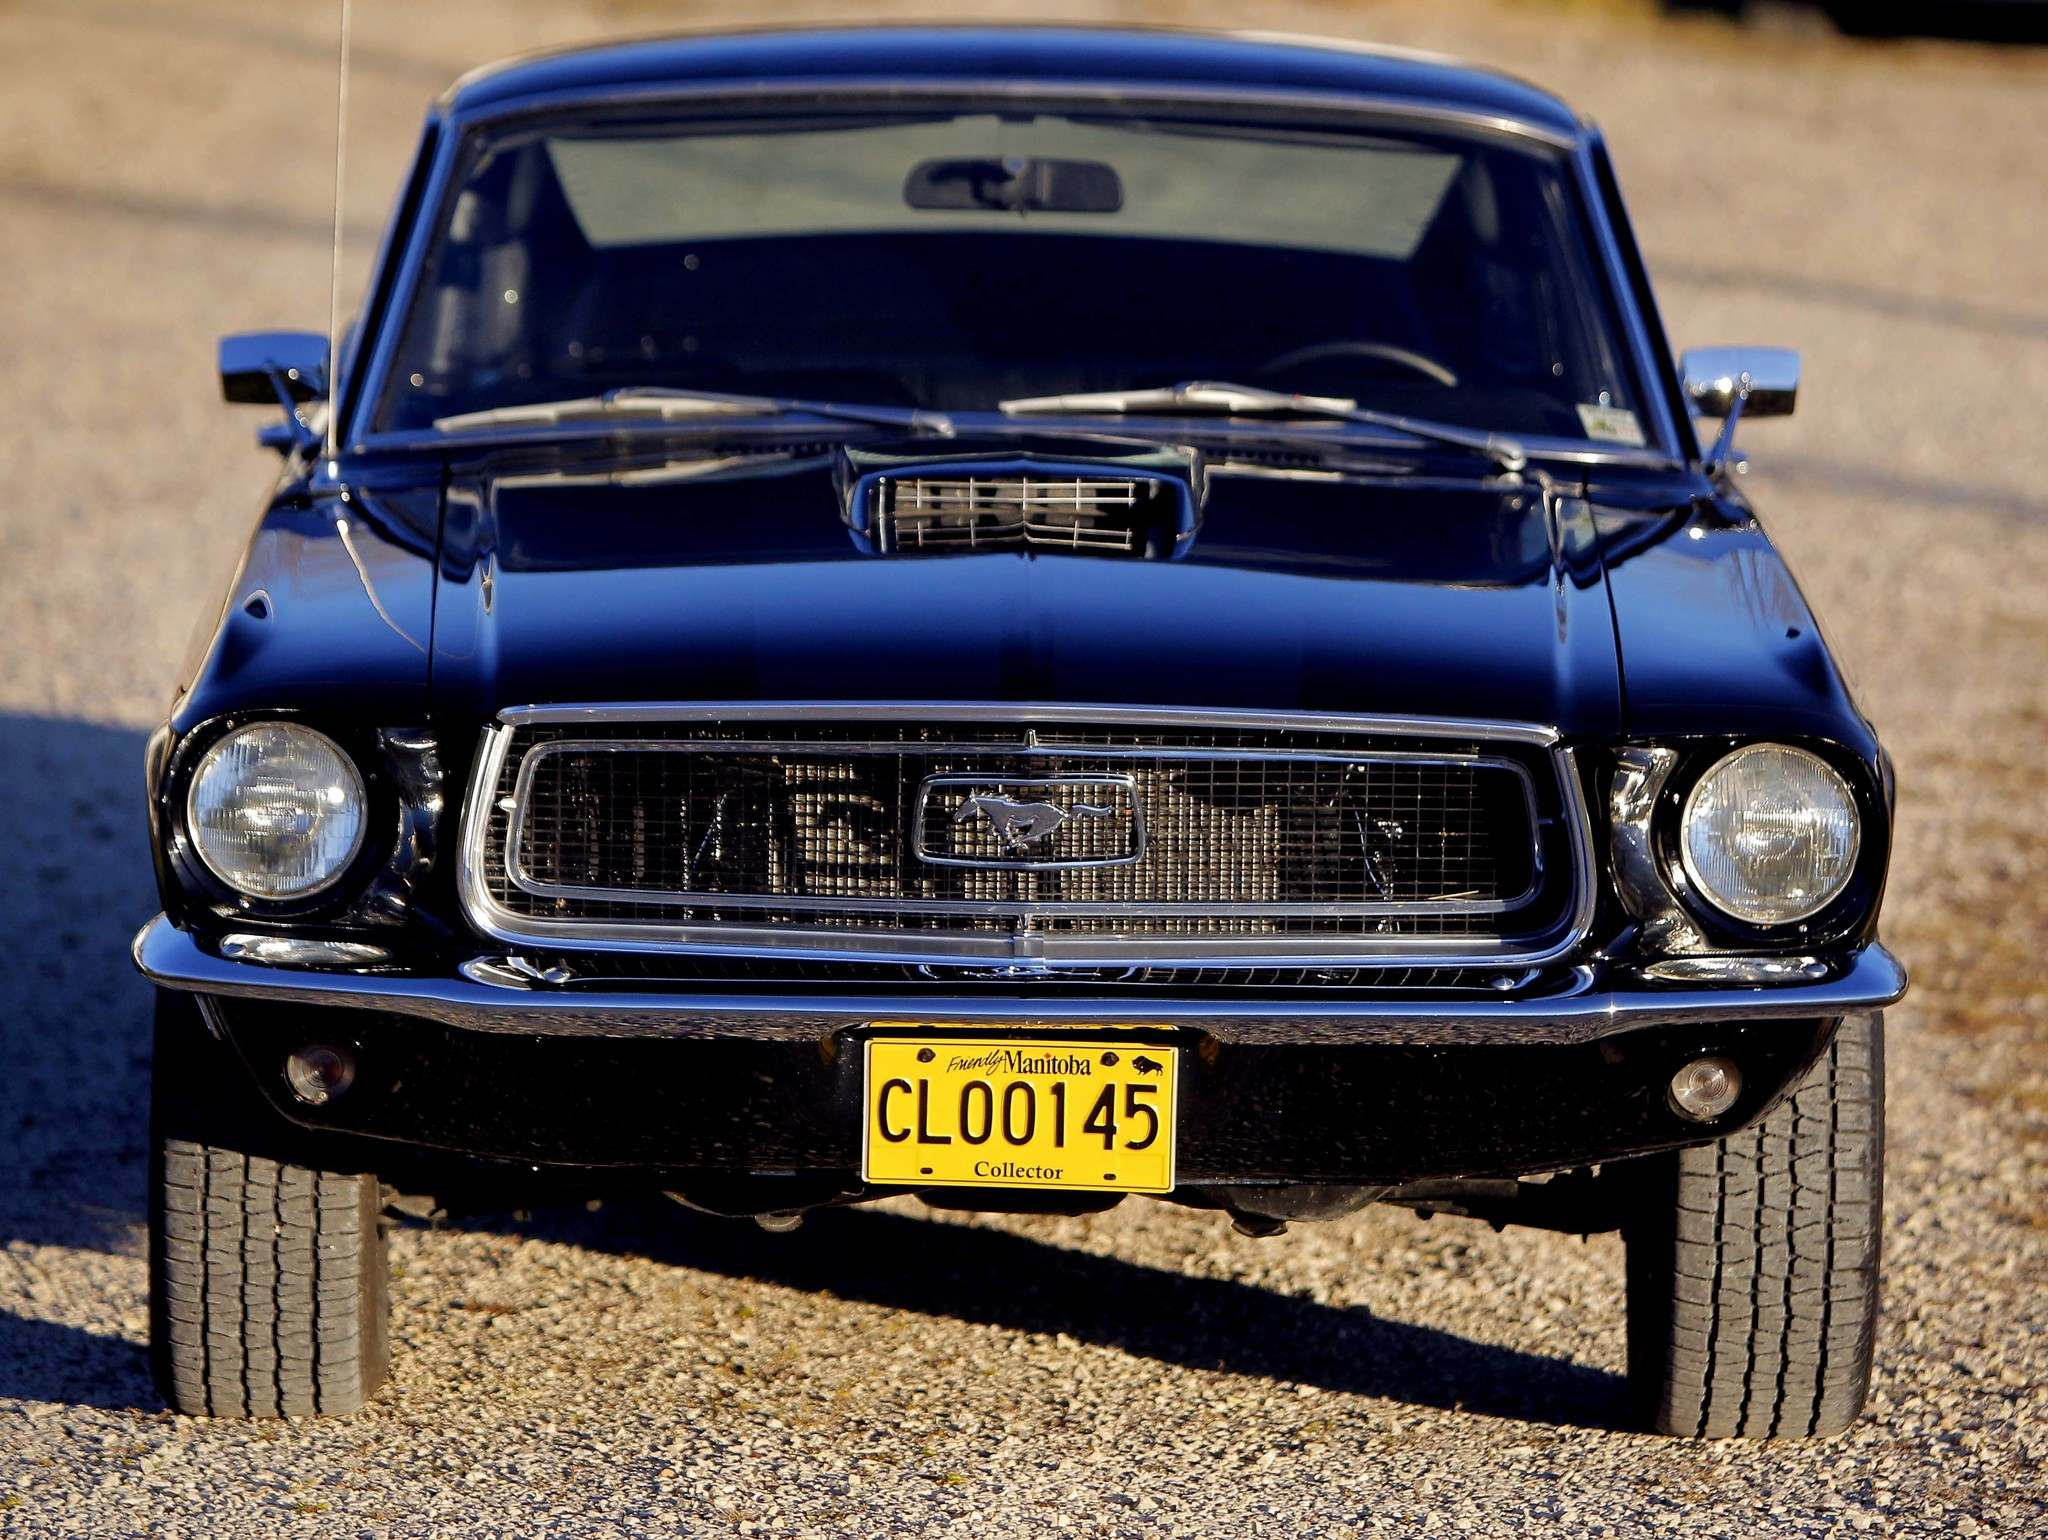 BORIS MINKEVICH / WINNIPEG FREE PRESSBodies of the '68 Mustang were stretched two inches longer and a marginally wider engine bay was designed to accommodate a new big-block V-8 engine option.